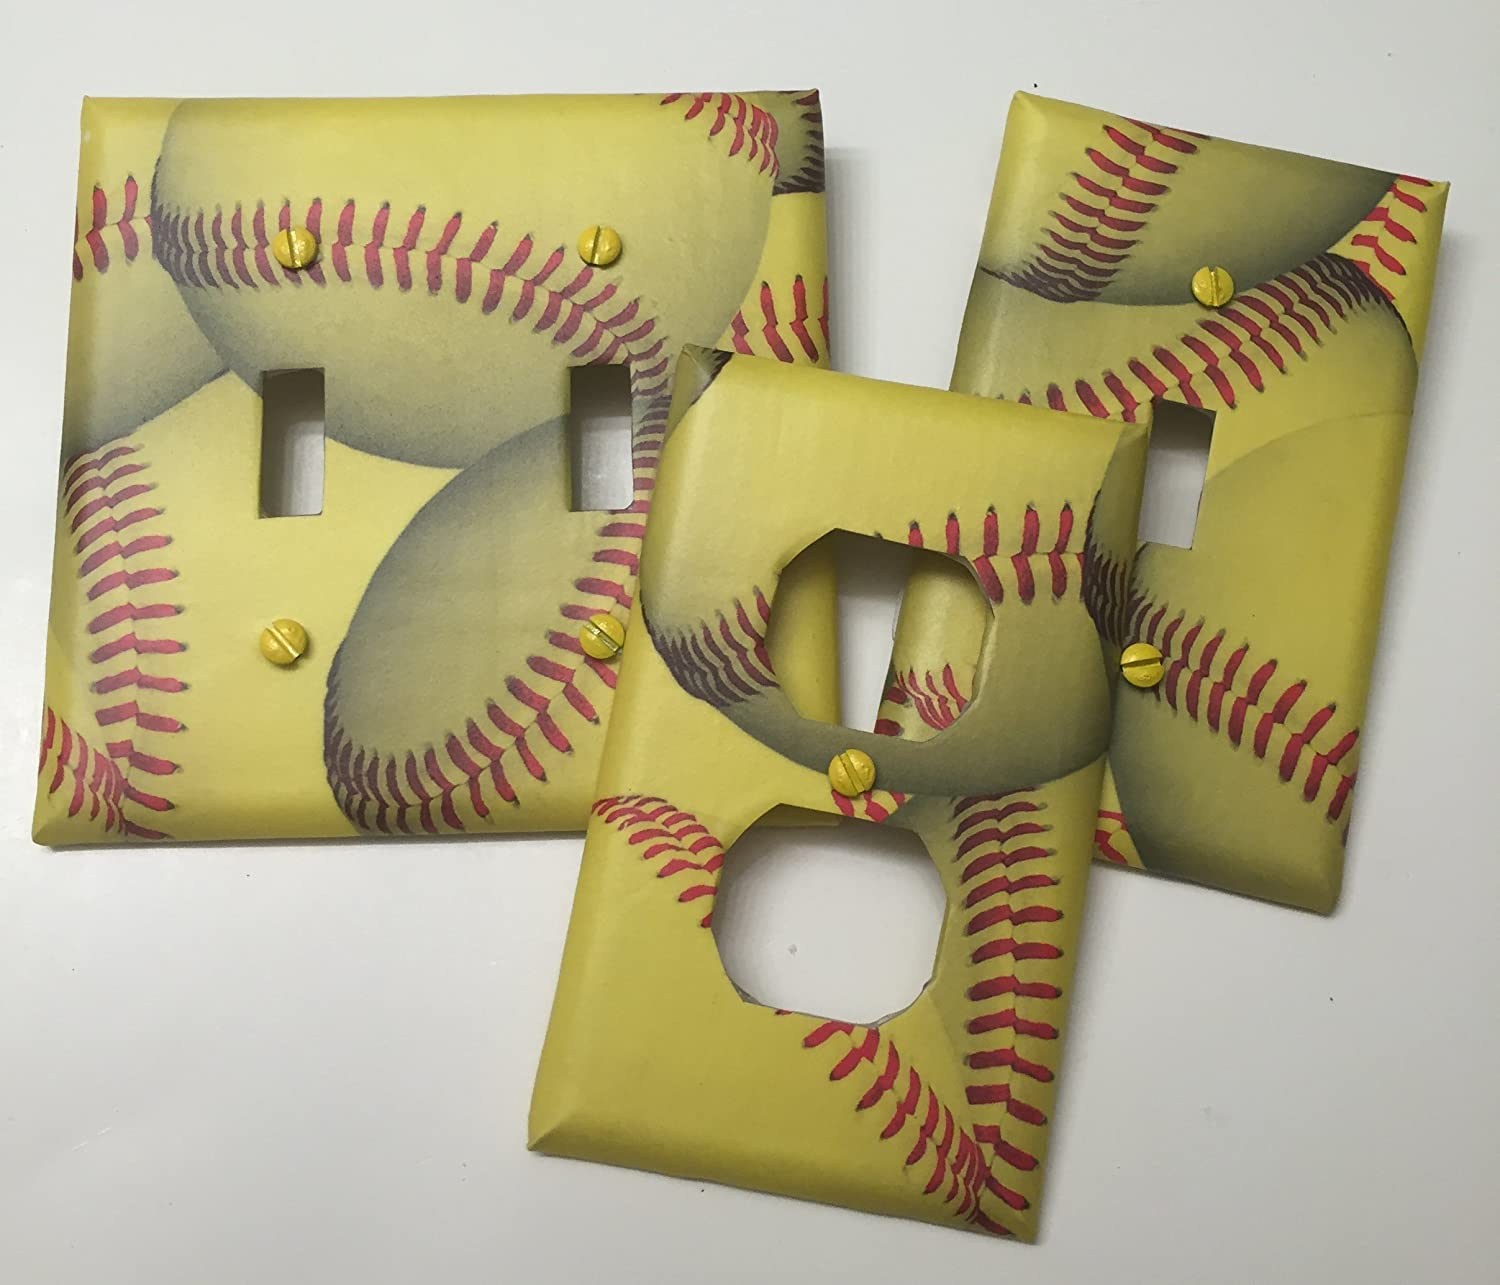 Softball sport, boys girls, teen room, playroom, light plate cover, light switch plate, outlet cover, outlet plate, home decor, wall art